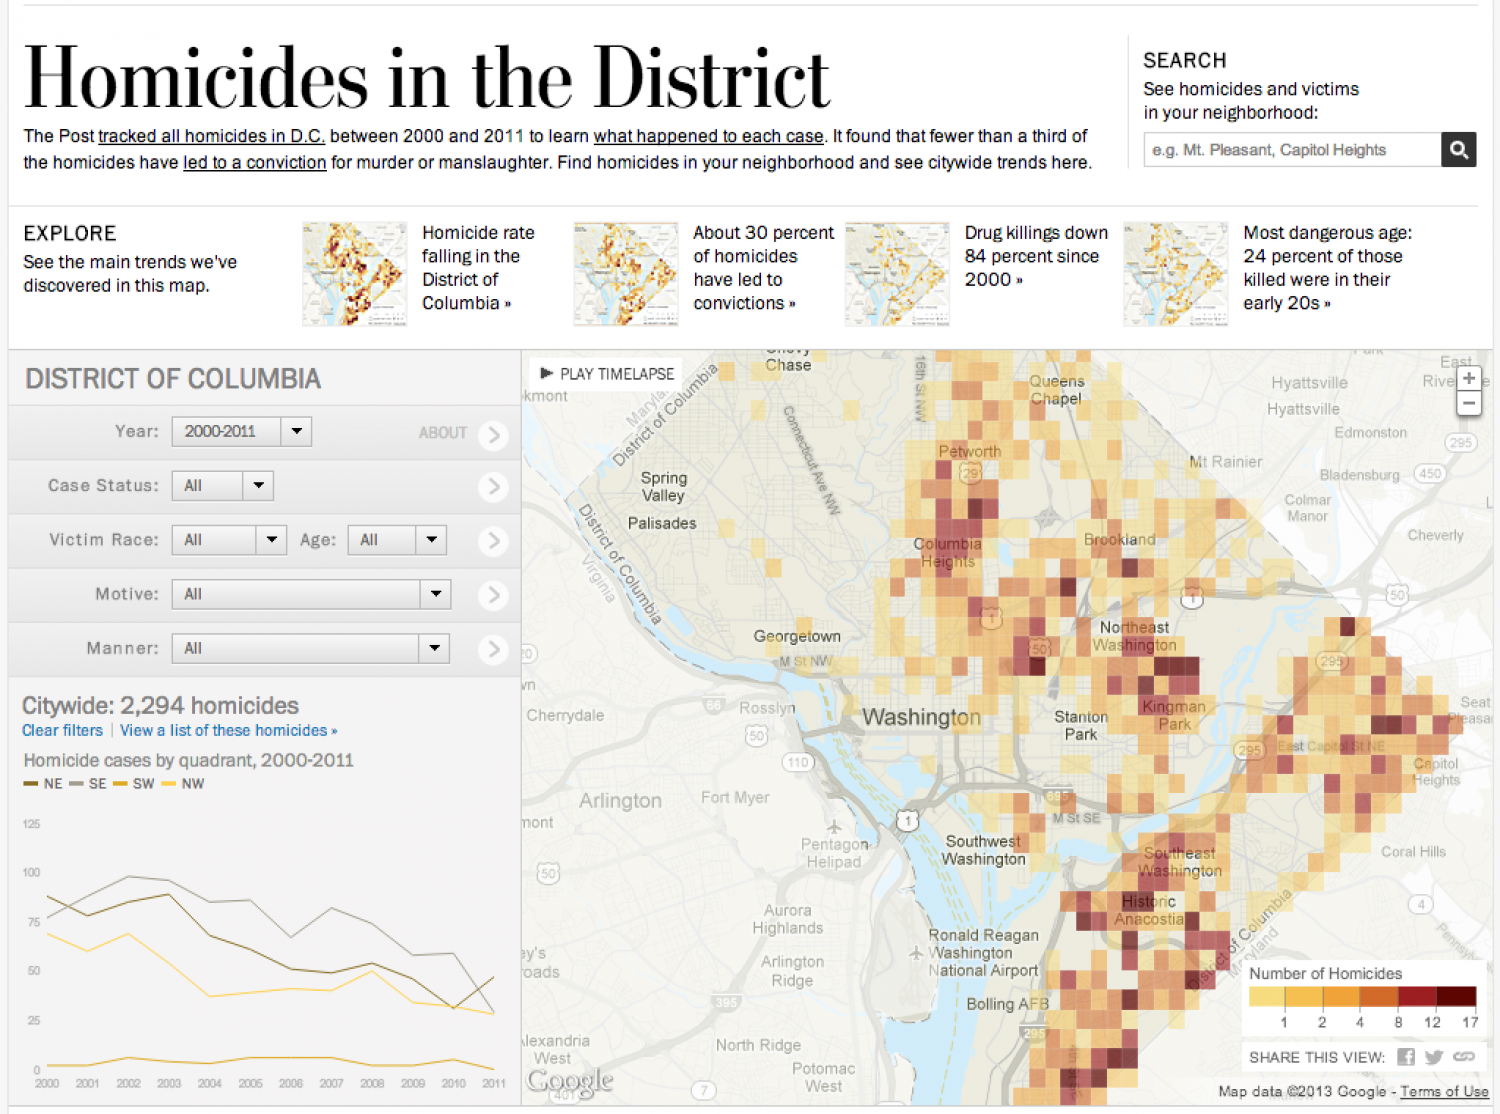 Homicides in the District Infographic